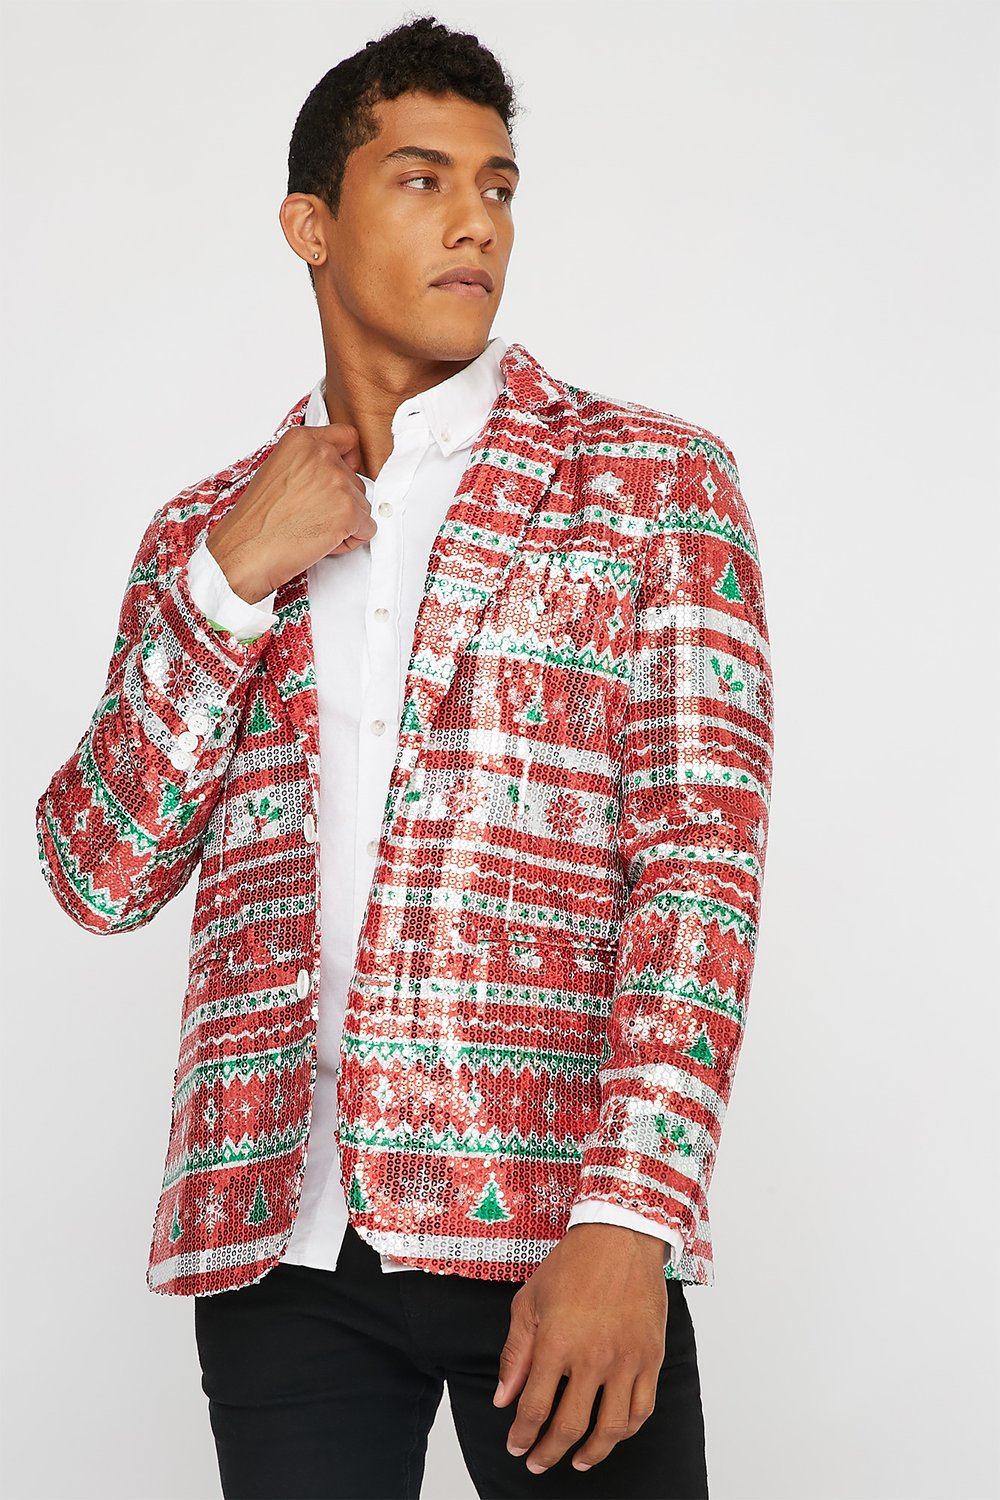 sequin ugly Christmas blazer